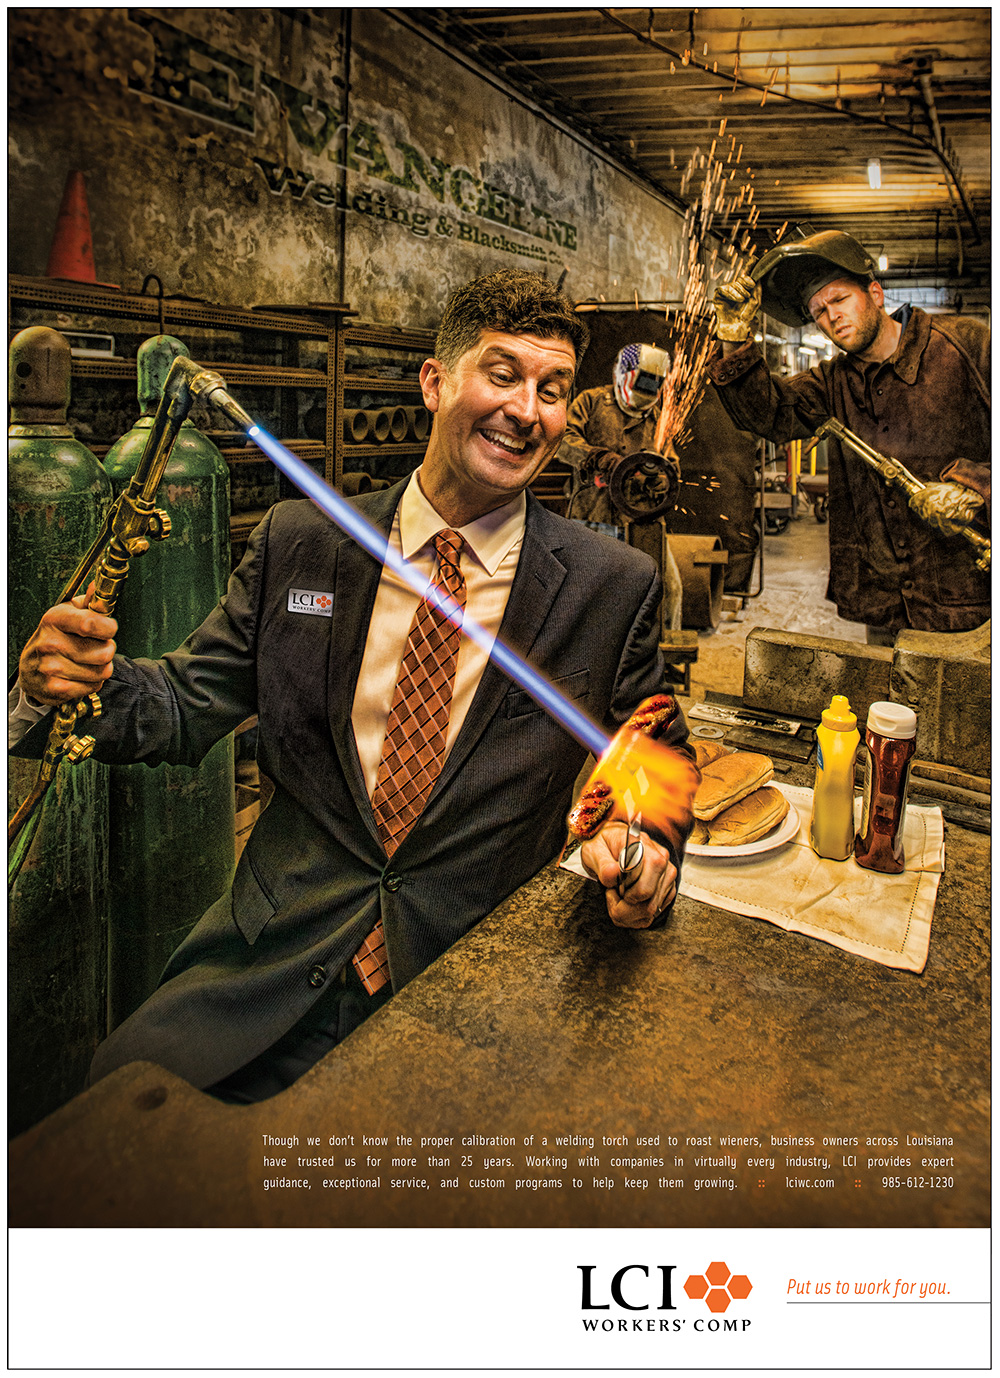 LCI Workers' Comp Advertising Campaign Print Ad shot at New Orleans welding company.